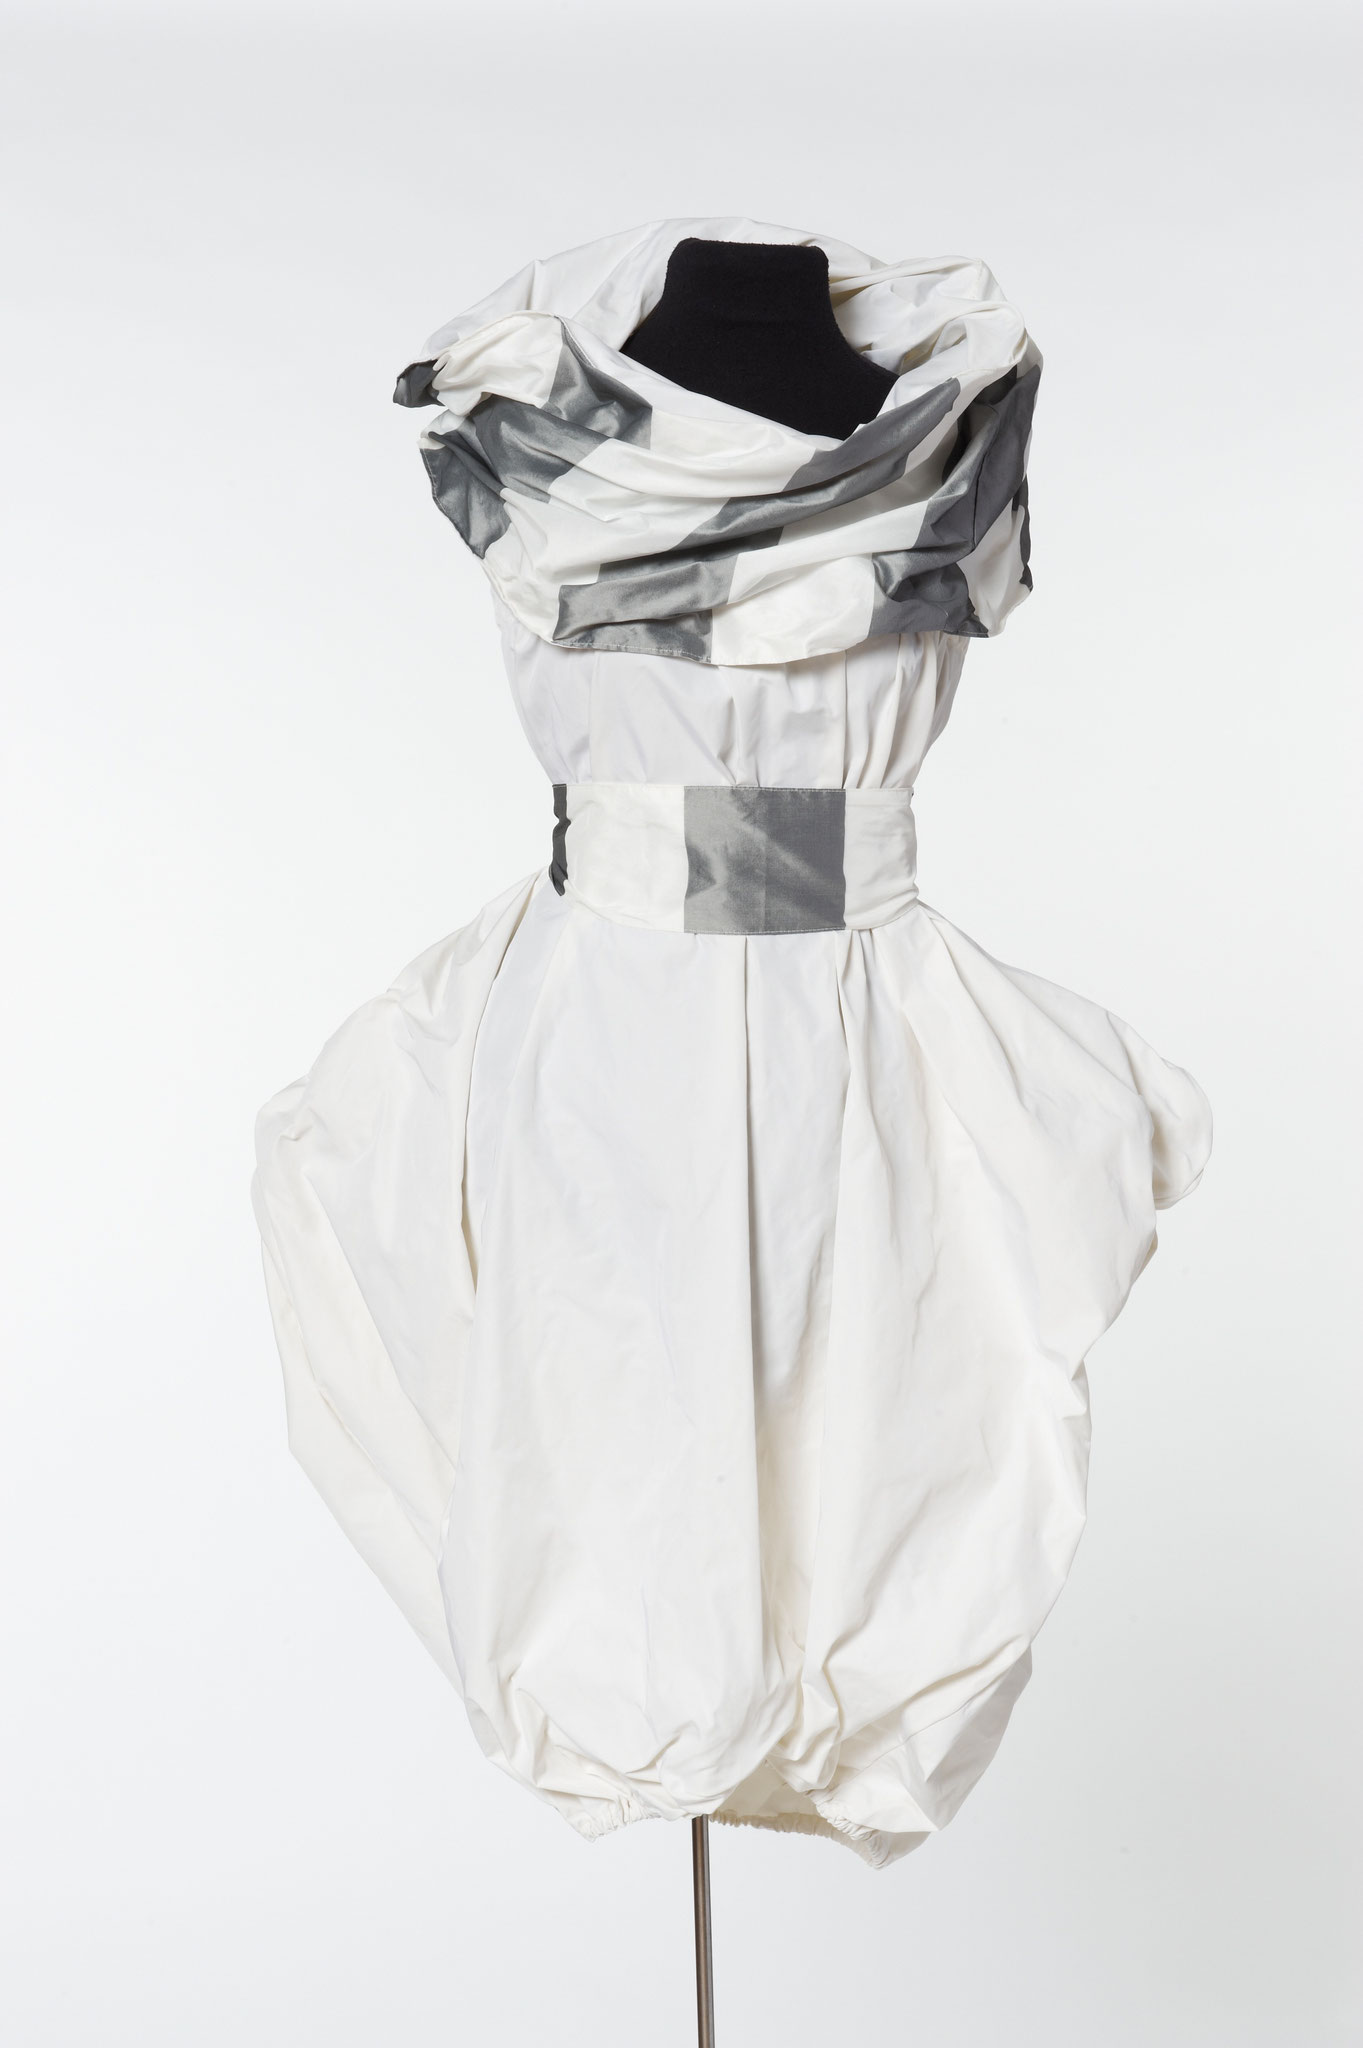 3-piece outfit: tail skirt, sash, scarf. Material: silk/microfibre